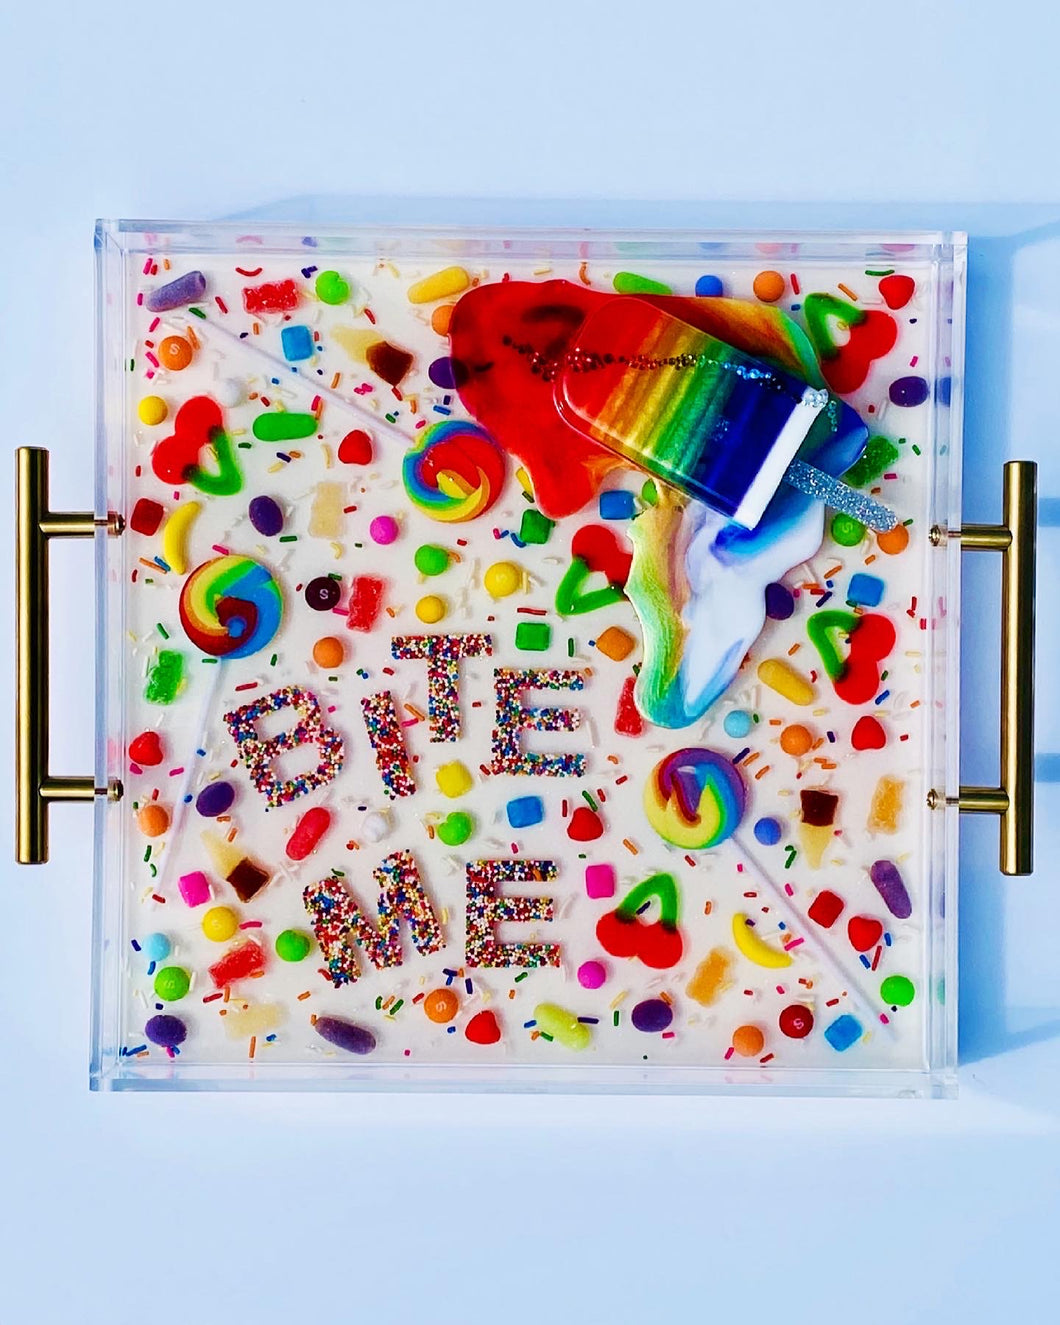 Limited Edition Resin Art - Lucite Tray with Popsicle Sculpture (